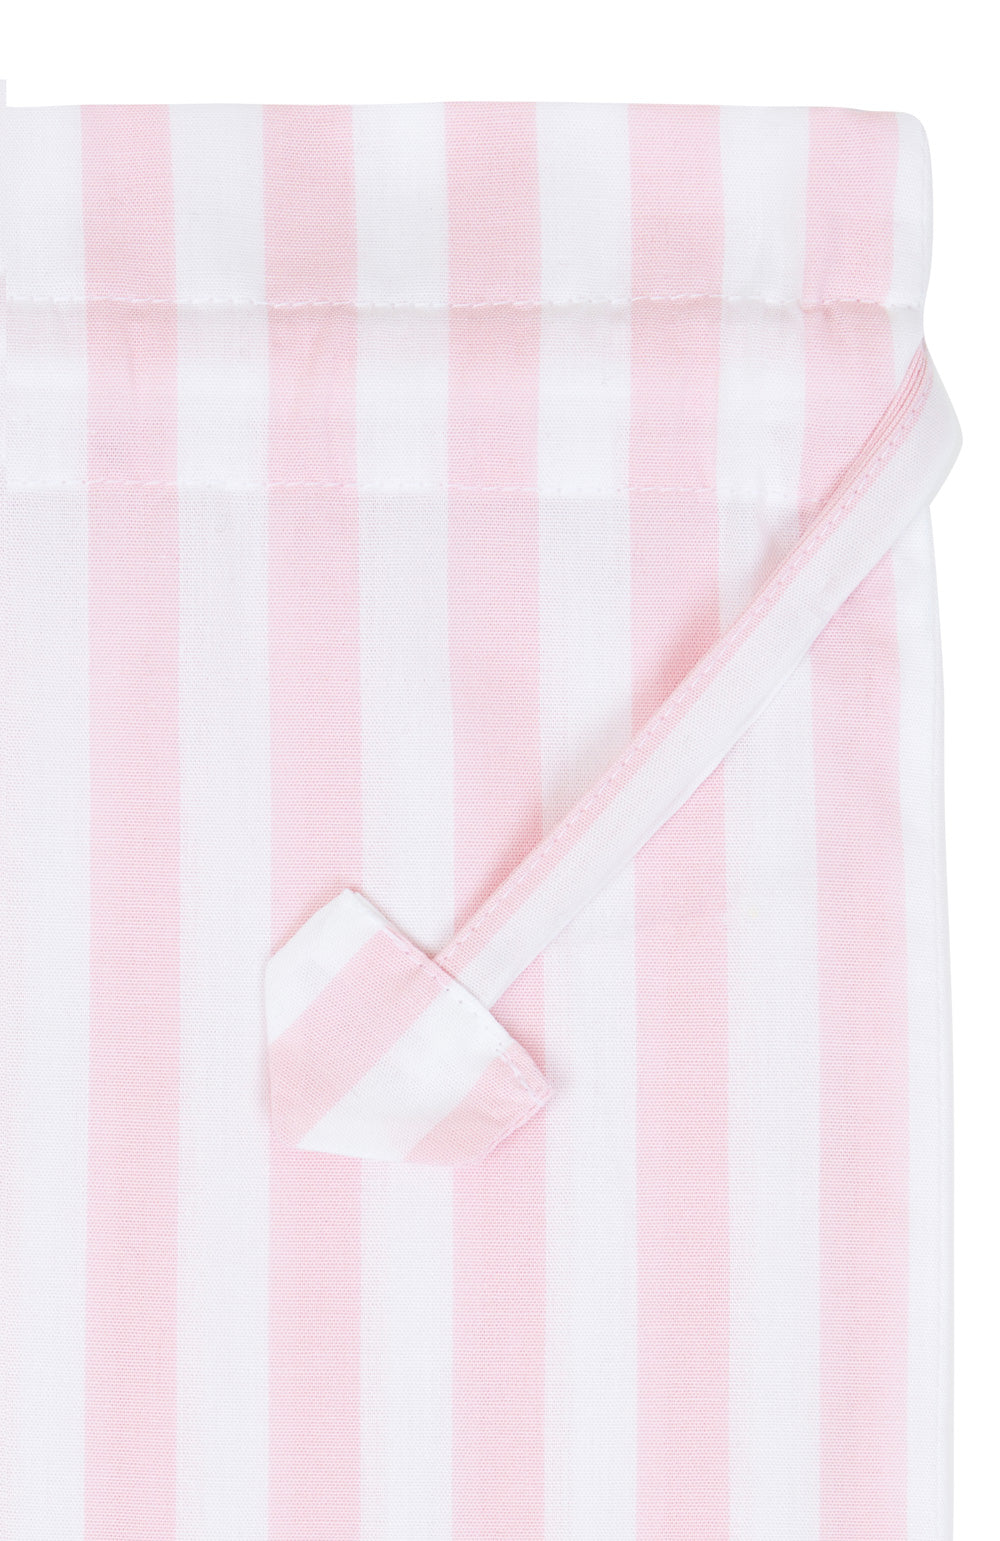 Cotton Pink Stripe Laundry Bag | Bonsoir of London